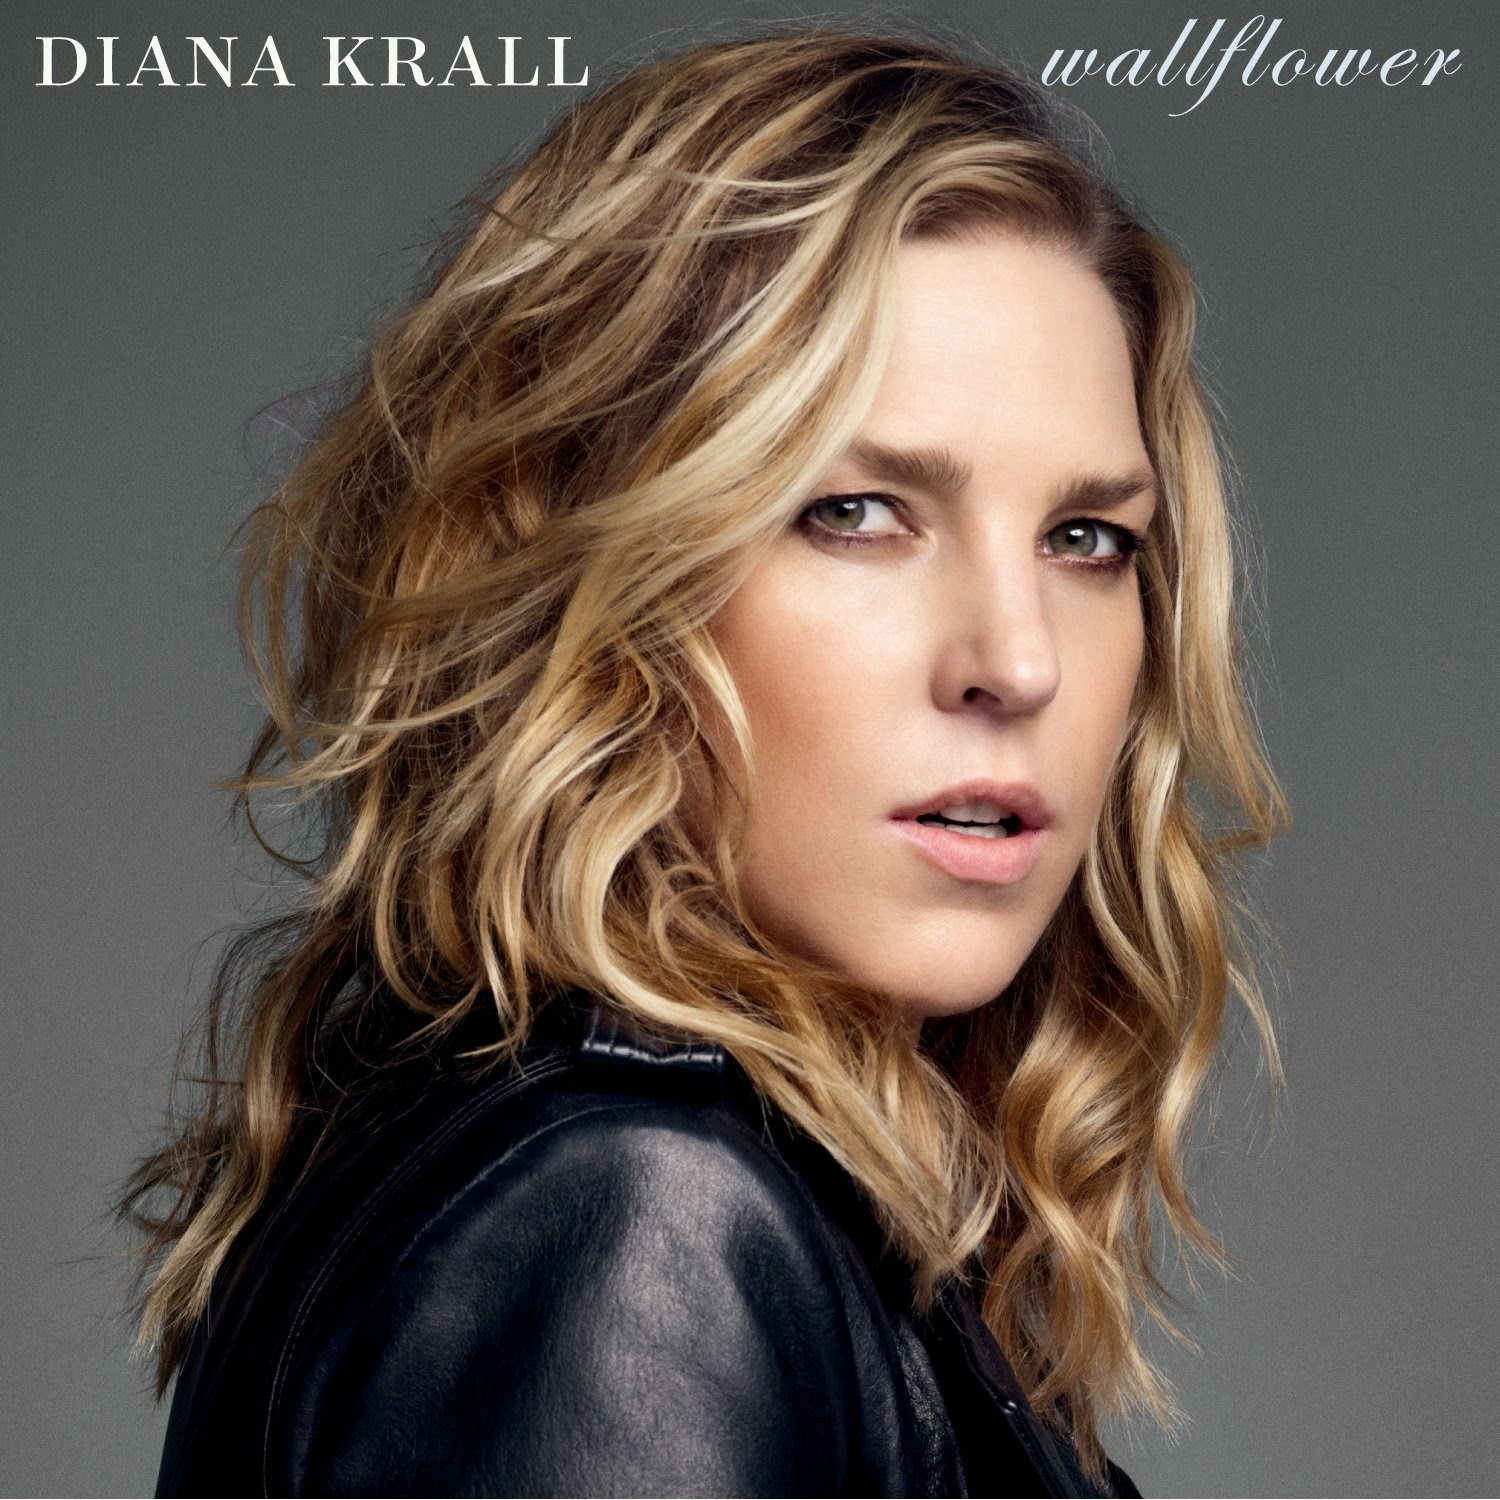 Diana Krall, Wallflower, album cover